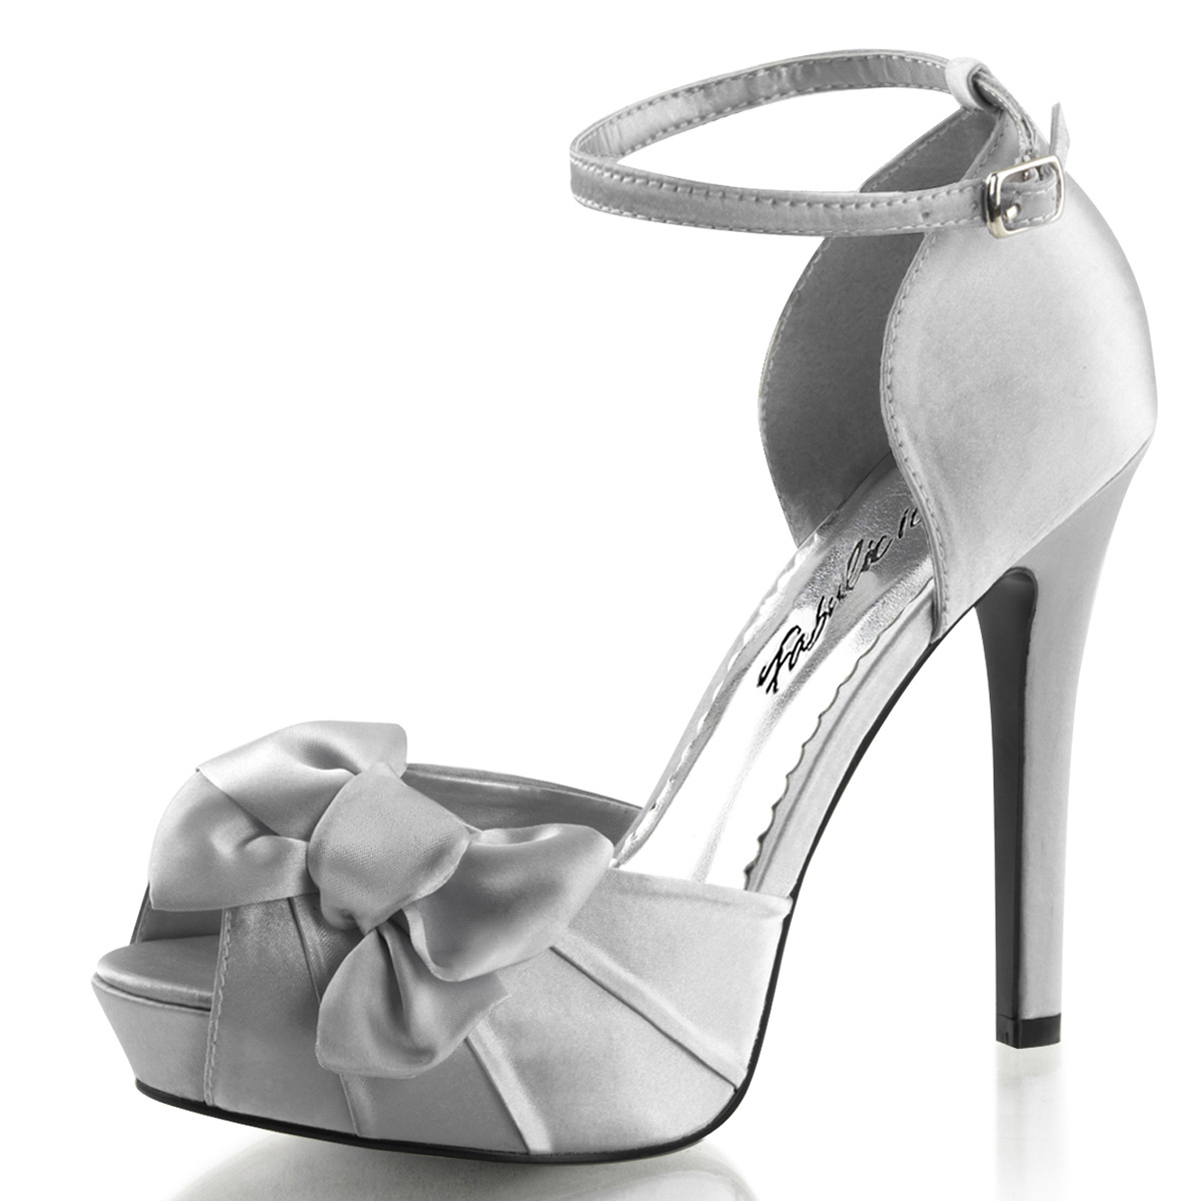 Womens Single Strap Heels D'Orsay Pump Peep Toe Shoes Satin Bow 4 3/4 Inch Heel